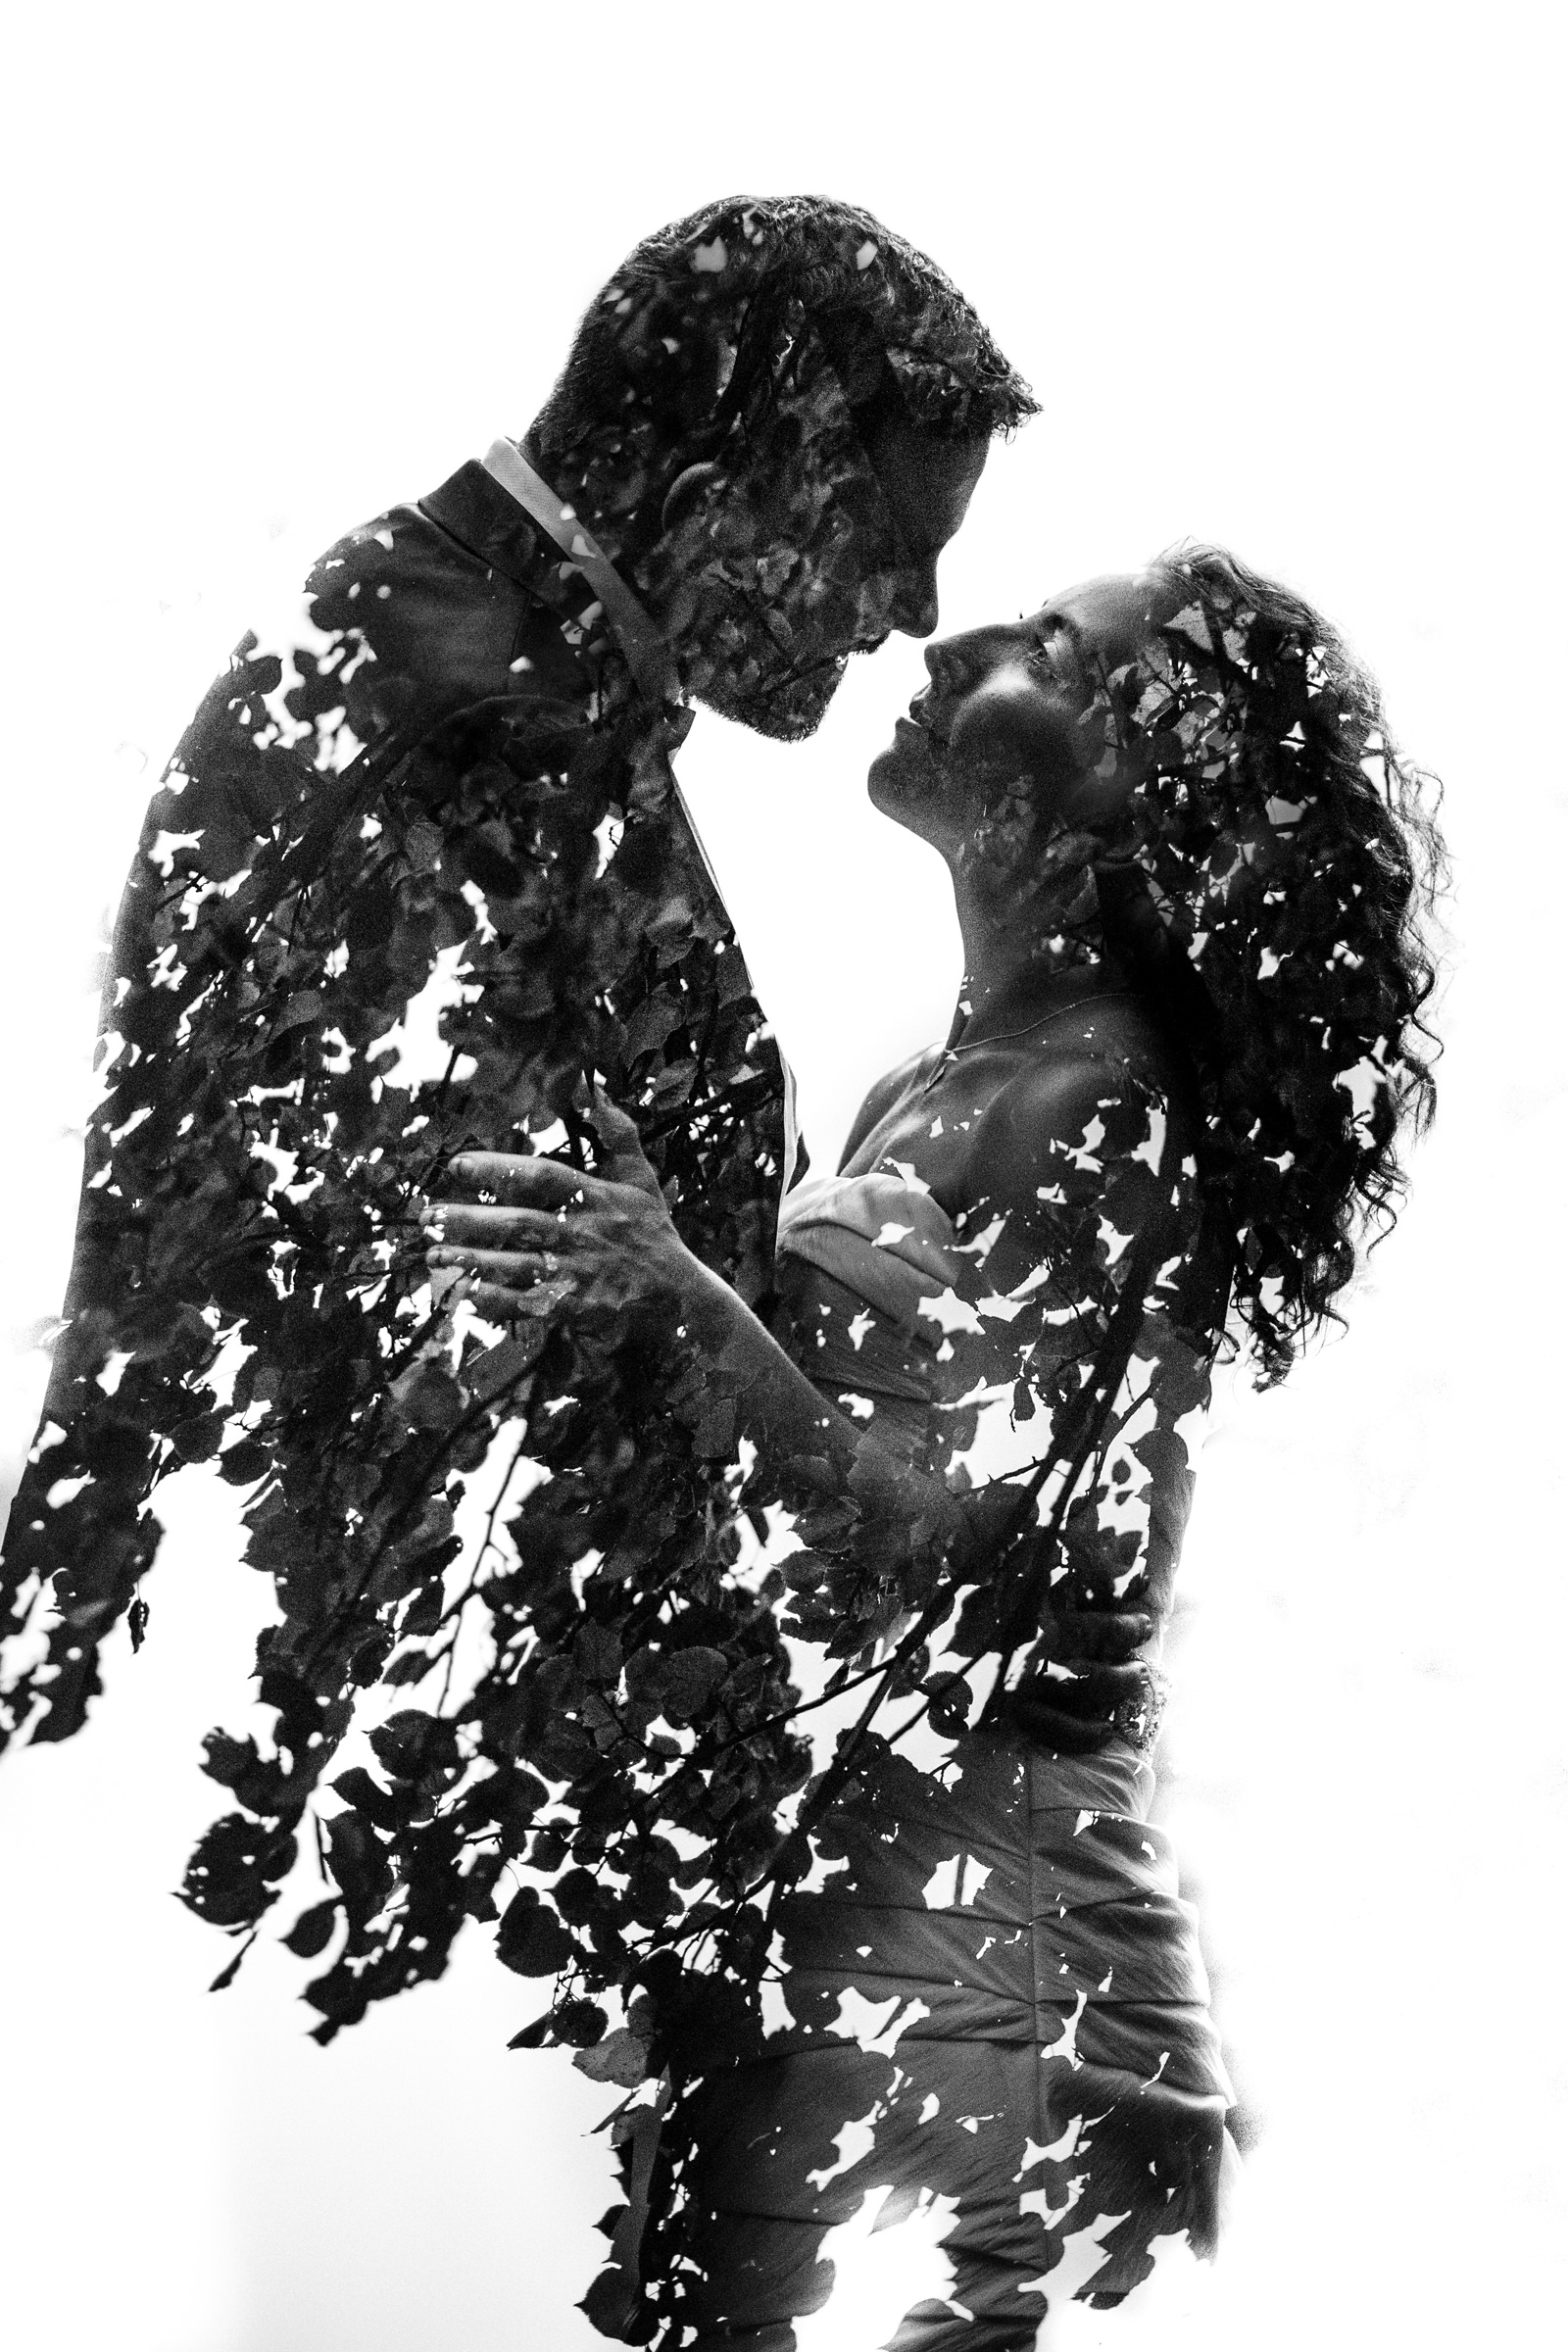 Creative double exposure bride and groom portrait - Photo by Susan Stripling Photography